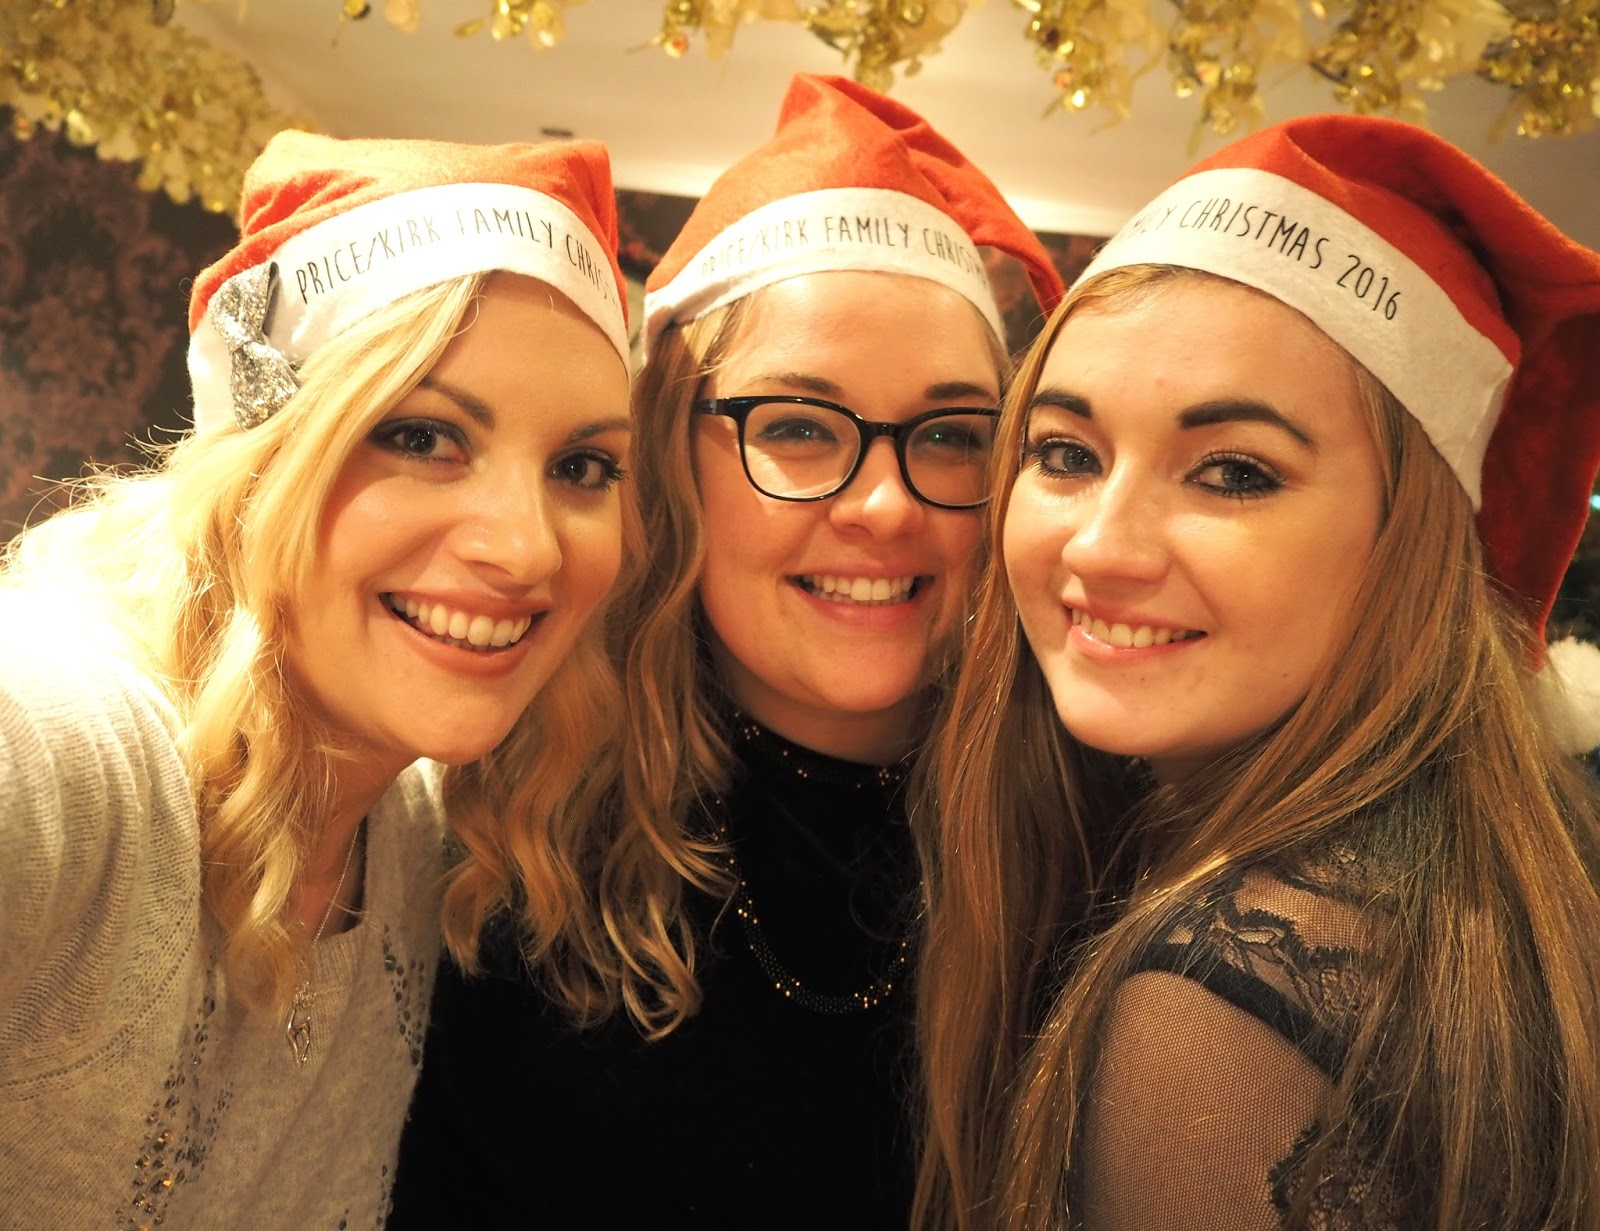 My Christmas in Pictures 2016, Katie Kirk Loves, Christmas Day, Big Family Christmas, Christmas Ideas, Christmas Inspiration, UK Blogger, Beauty Blogger, Fashion Blogger, Lifestyle Blogger